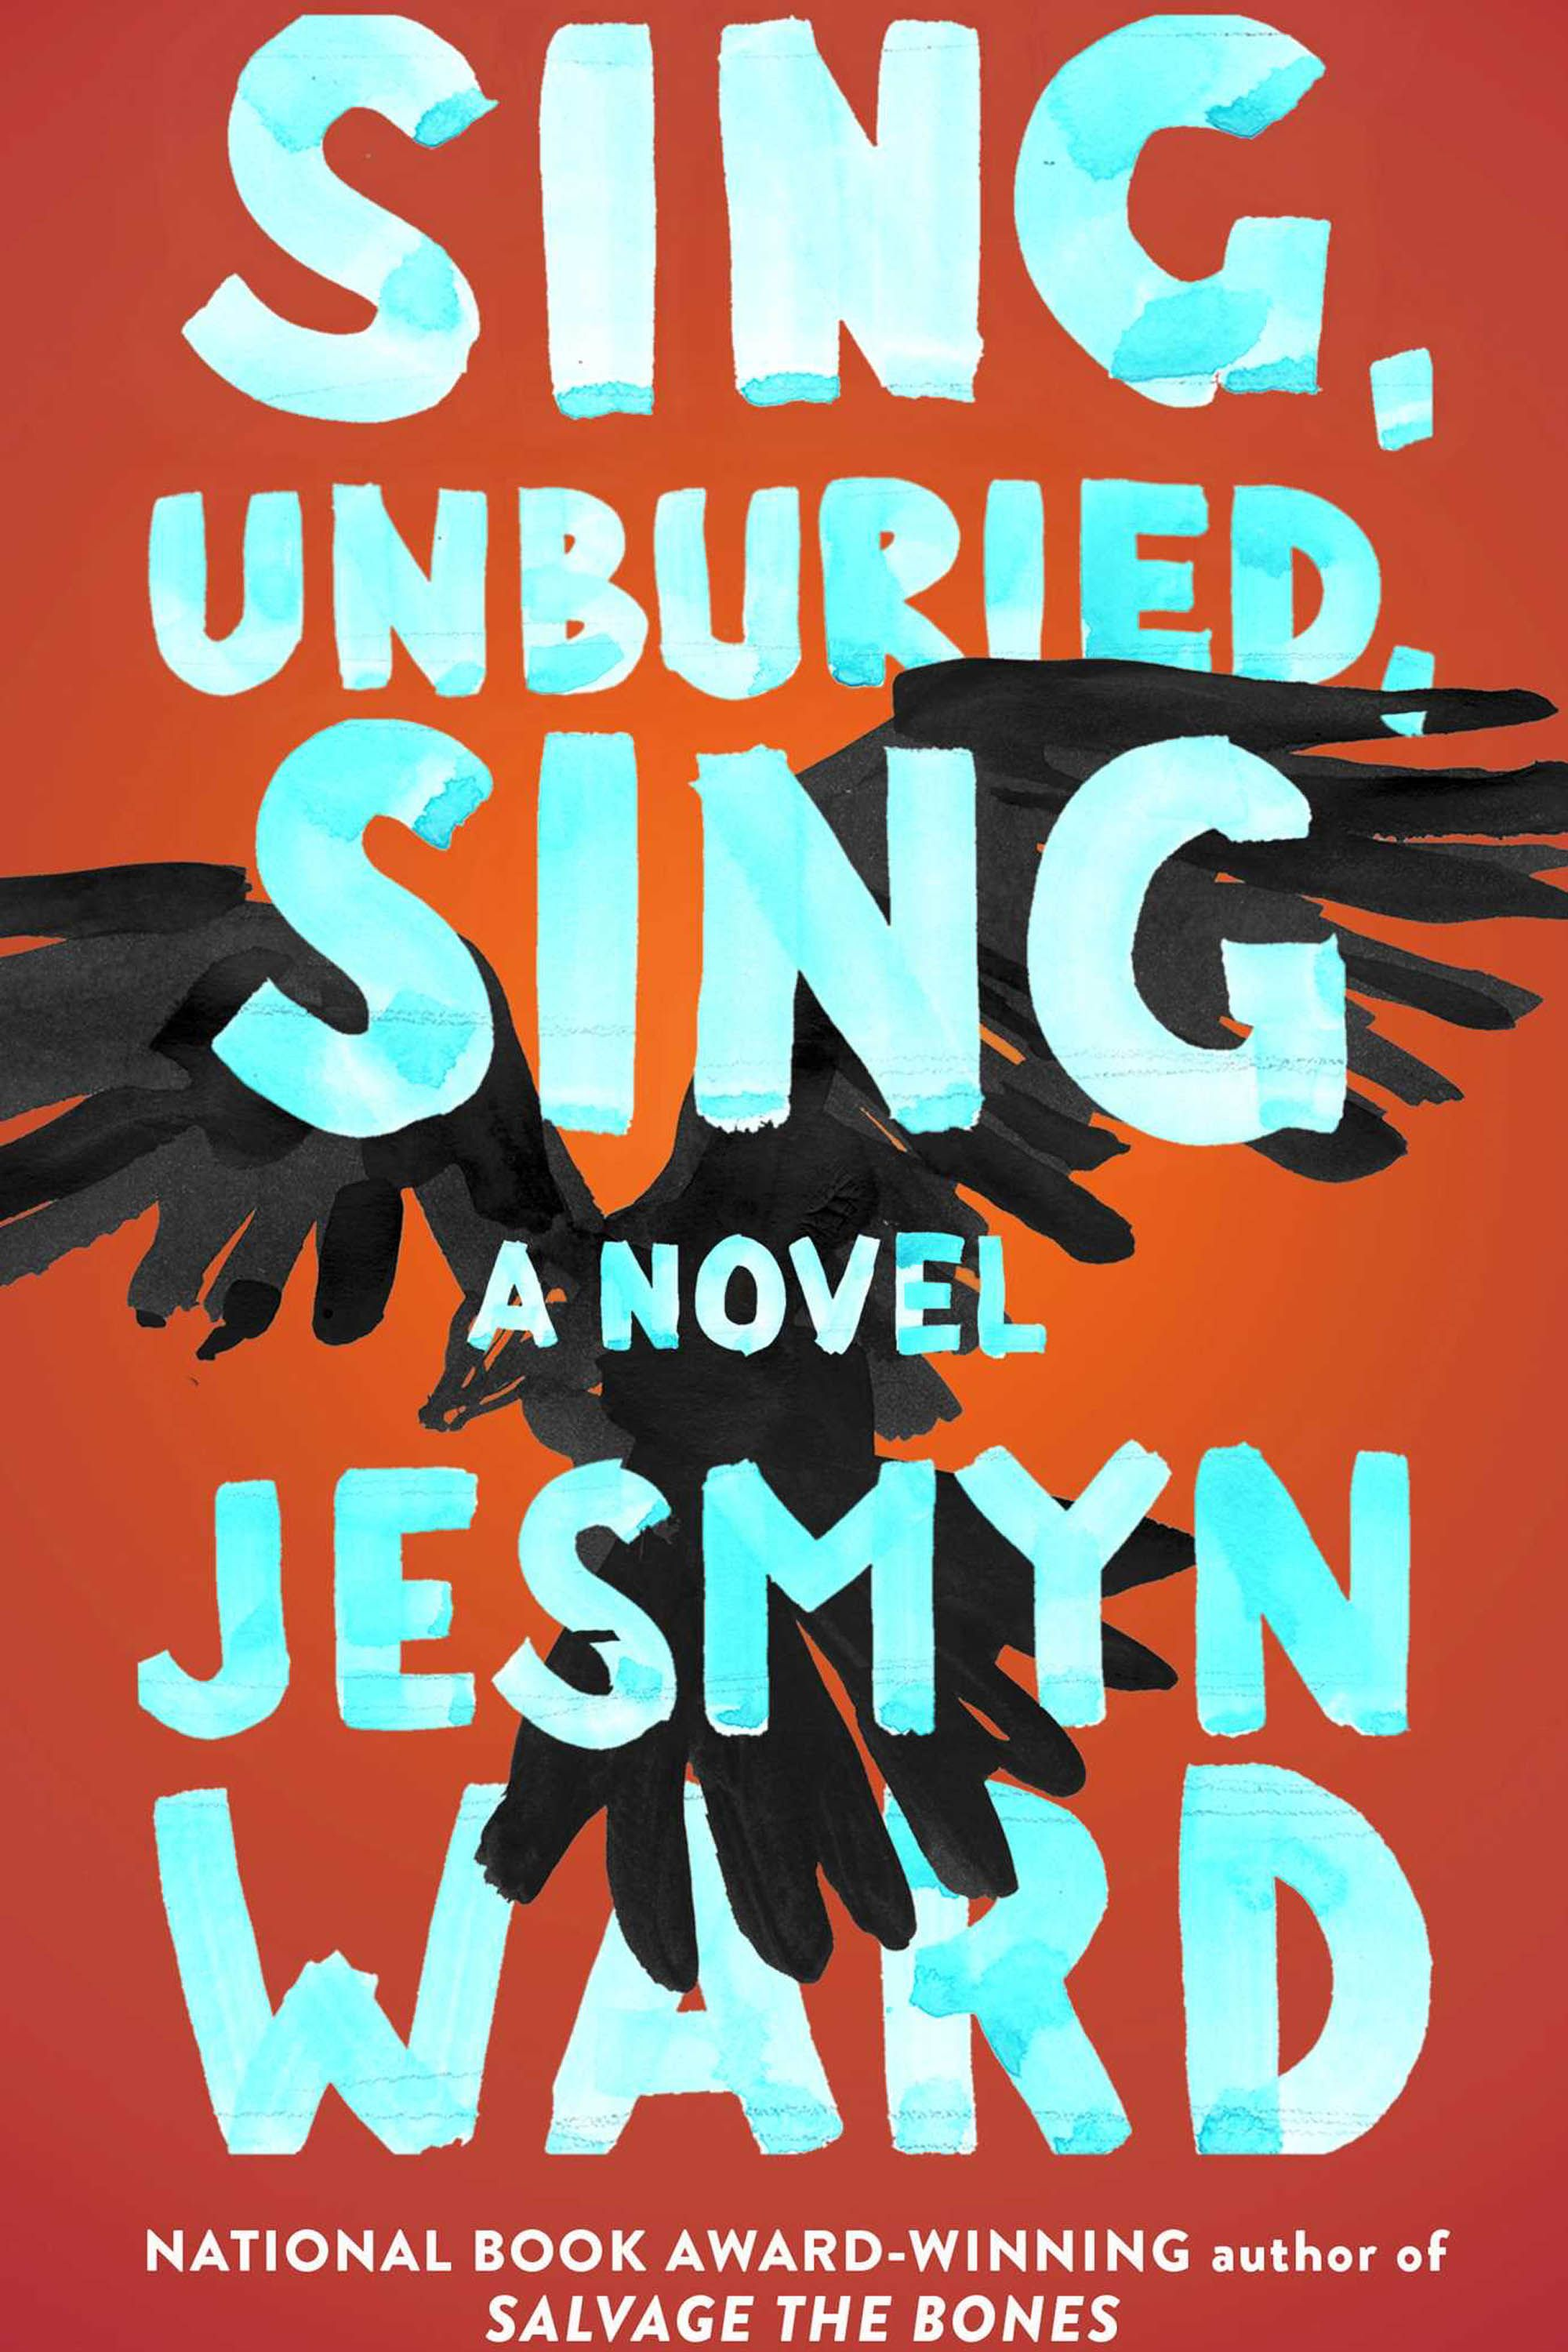 "<p>National Book Award–winning author Jesmyn Ward's memoir&nbsp&#x3B;<em data-verified=""redactor"" data-redactor-tag=""em""><a href=""https://www.amazon.com/Men-We-Reaped-Jesmyn-Ward-ebook/dp/B00CIR97T8"" data-tracking-id=""recirc-text-link"">Men We Reaped</a></em><span class=""redactor-invisible-space"" data-verified=""redactor"" data-redactor-tag=""span"" data-redactor-class=""redactor-invisible-space""> revealed her own pain after addiction, suicide, and pure misfortune took the lives of several men she knew. In her newest novel, she sets on the</span>&nbsp&#x3B;trail of a Mississippi family also haunted by ghosts, addiction, and absences, as its members&nbsp&#x3B;reunite after a long separation. (<a href=""https://www.amazon.com/Sing-Unburied-Novel-Jesmyn-Ward-ebook/dp/B01M9I7CRC"" data-tracking-id=""recirc-text-link"">September 5, Scribner</a>)</p>"